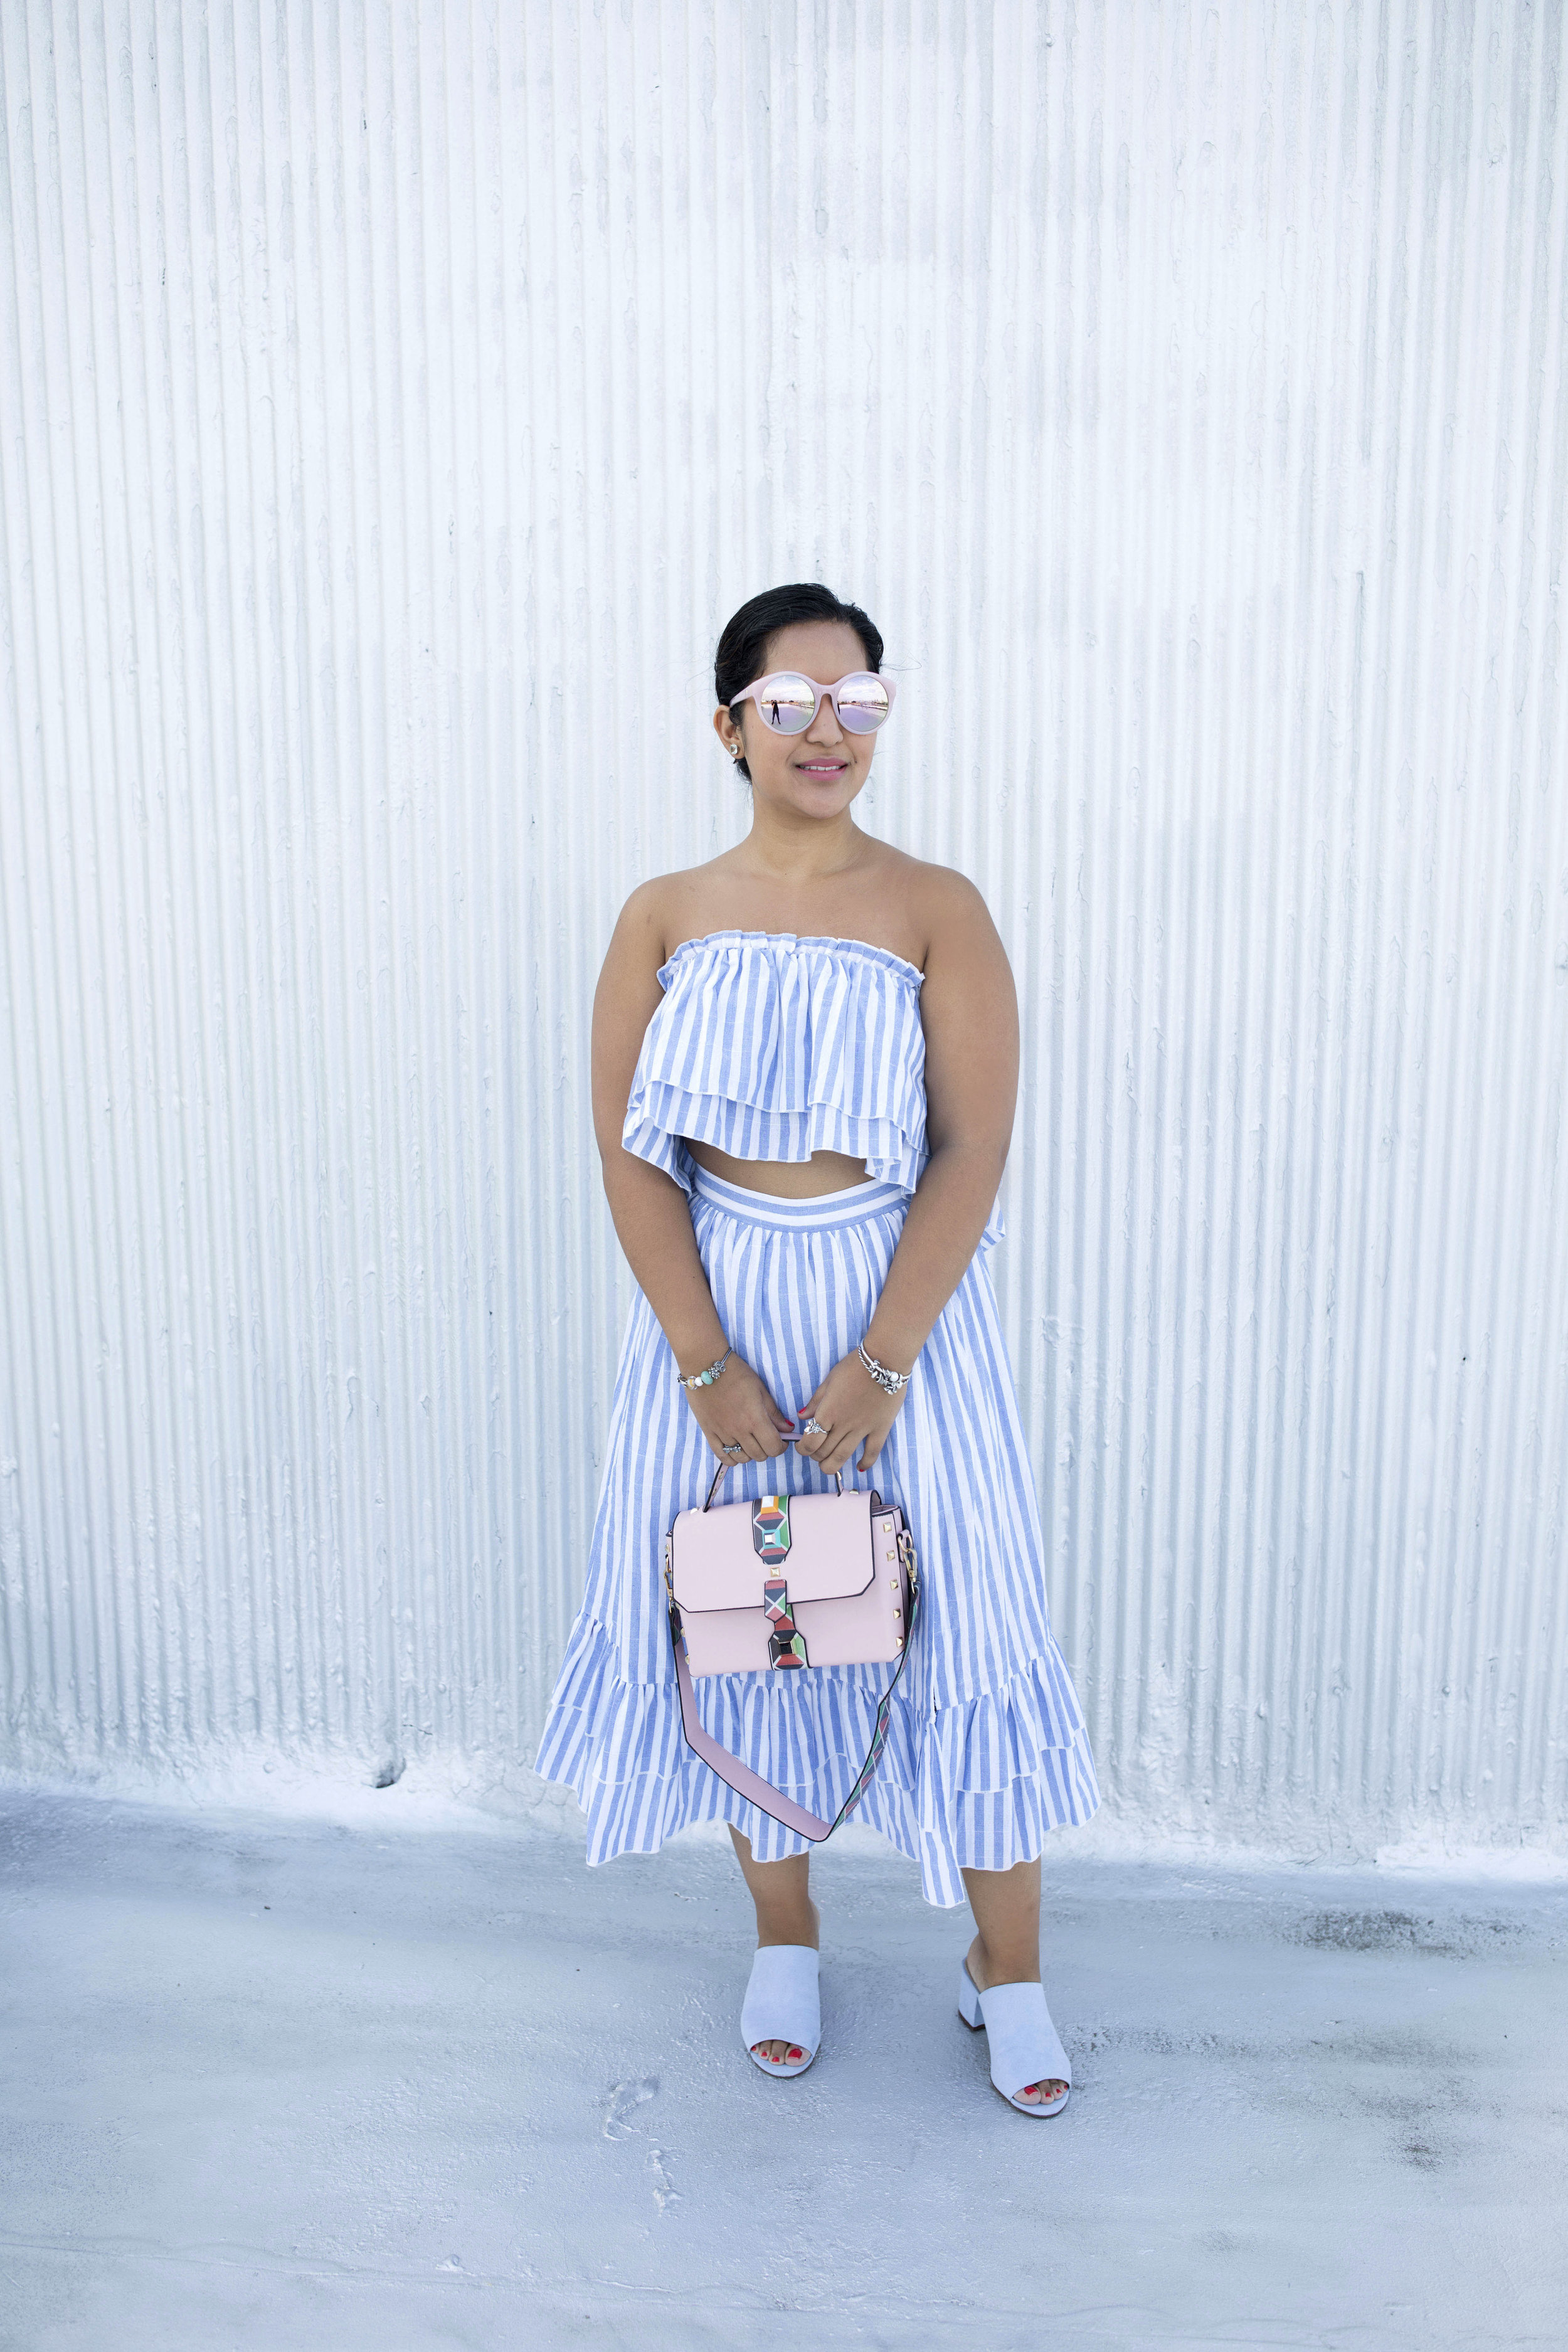 Krity S x SheIn x 2 piece stripped set1.jpg